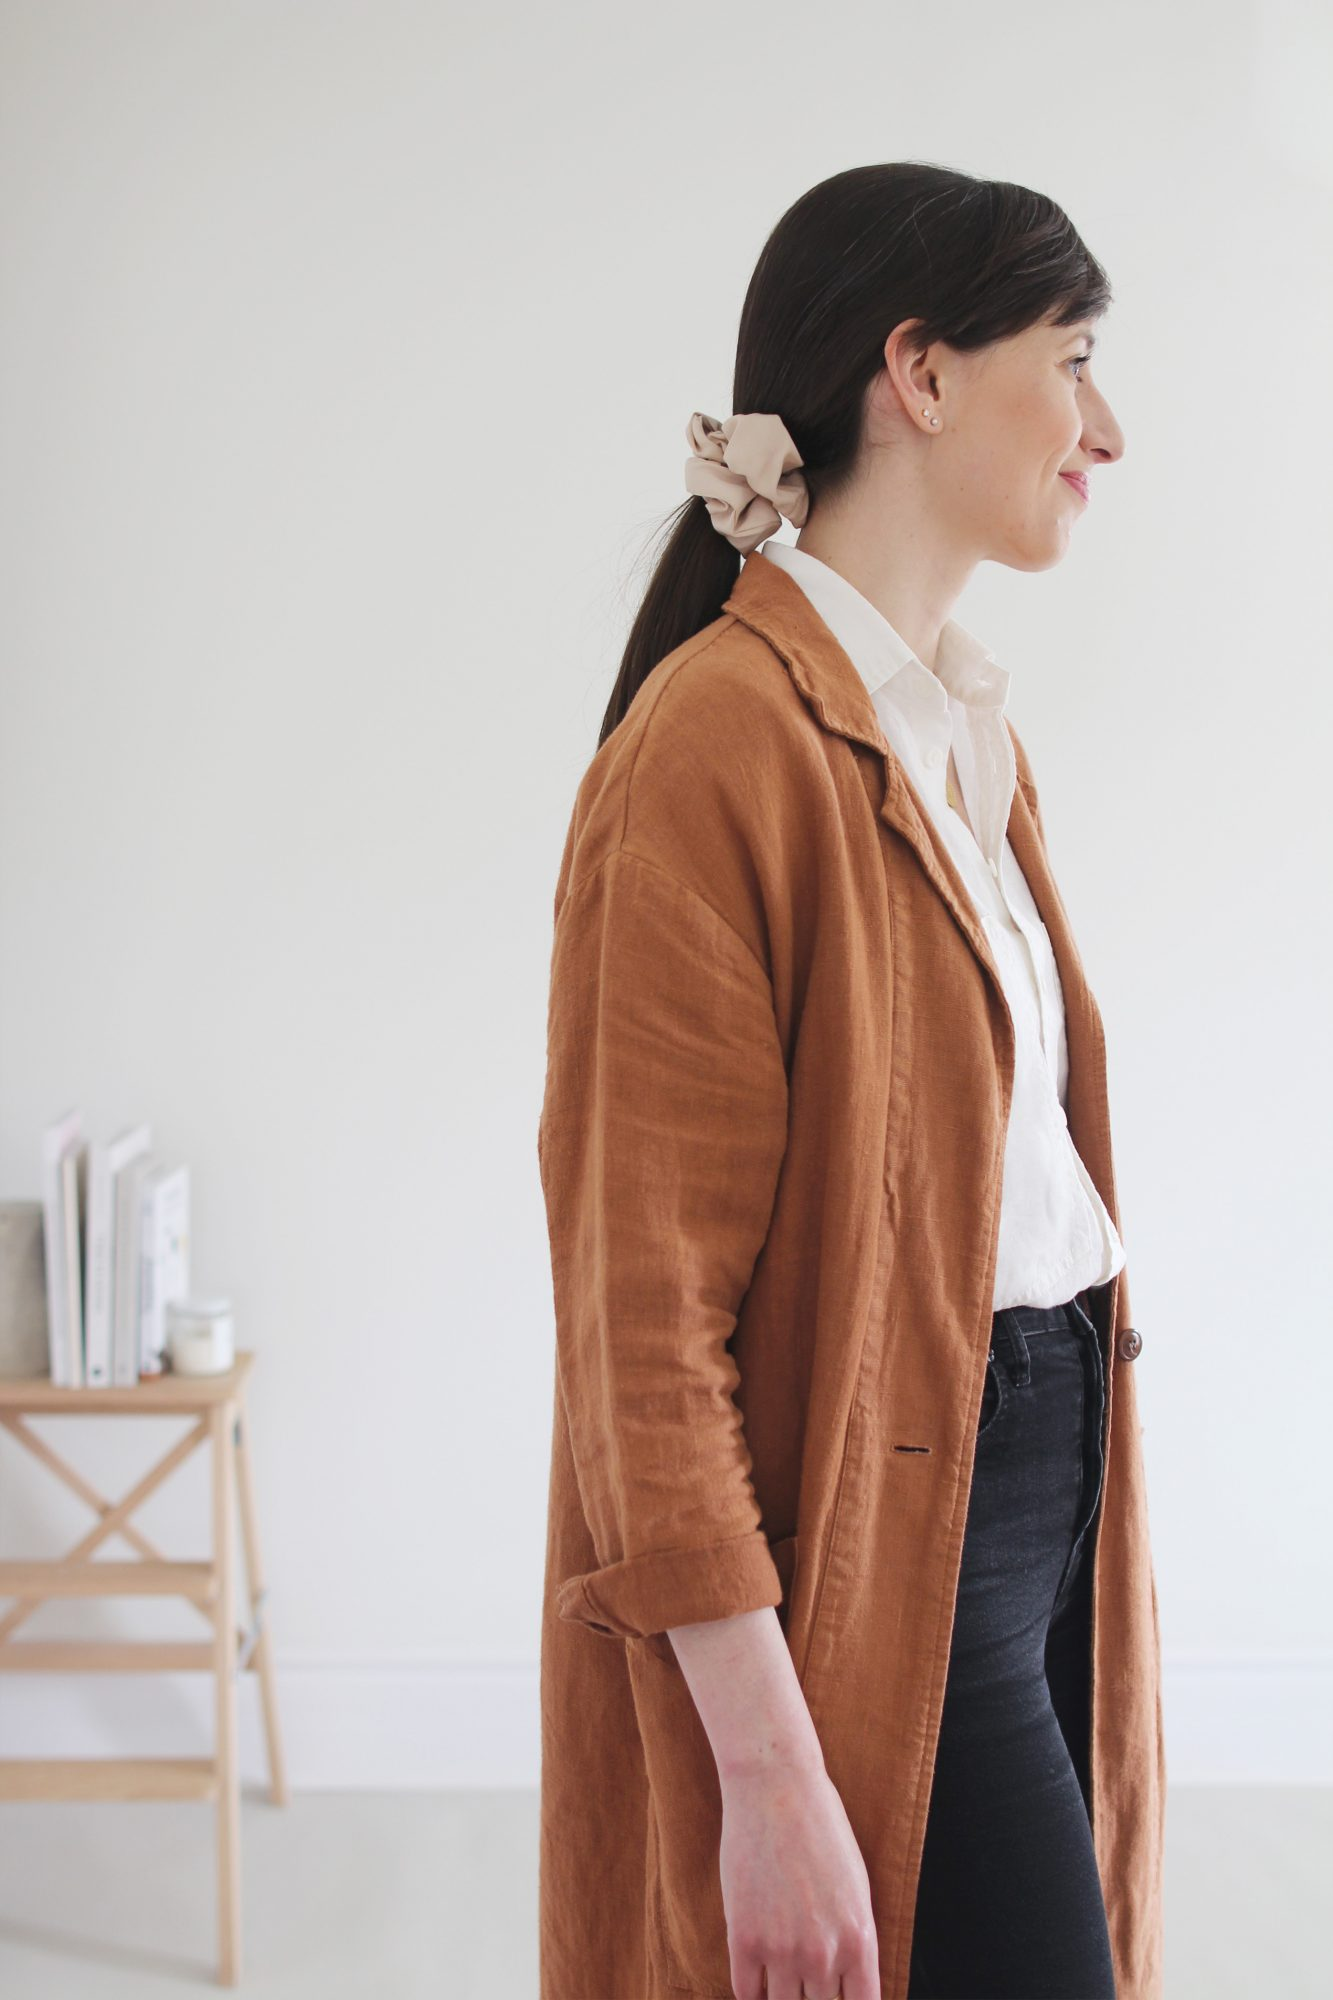 Style Bee - 2 Shirts - 7 Looks